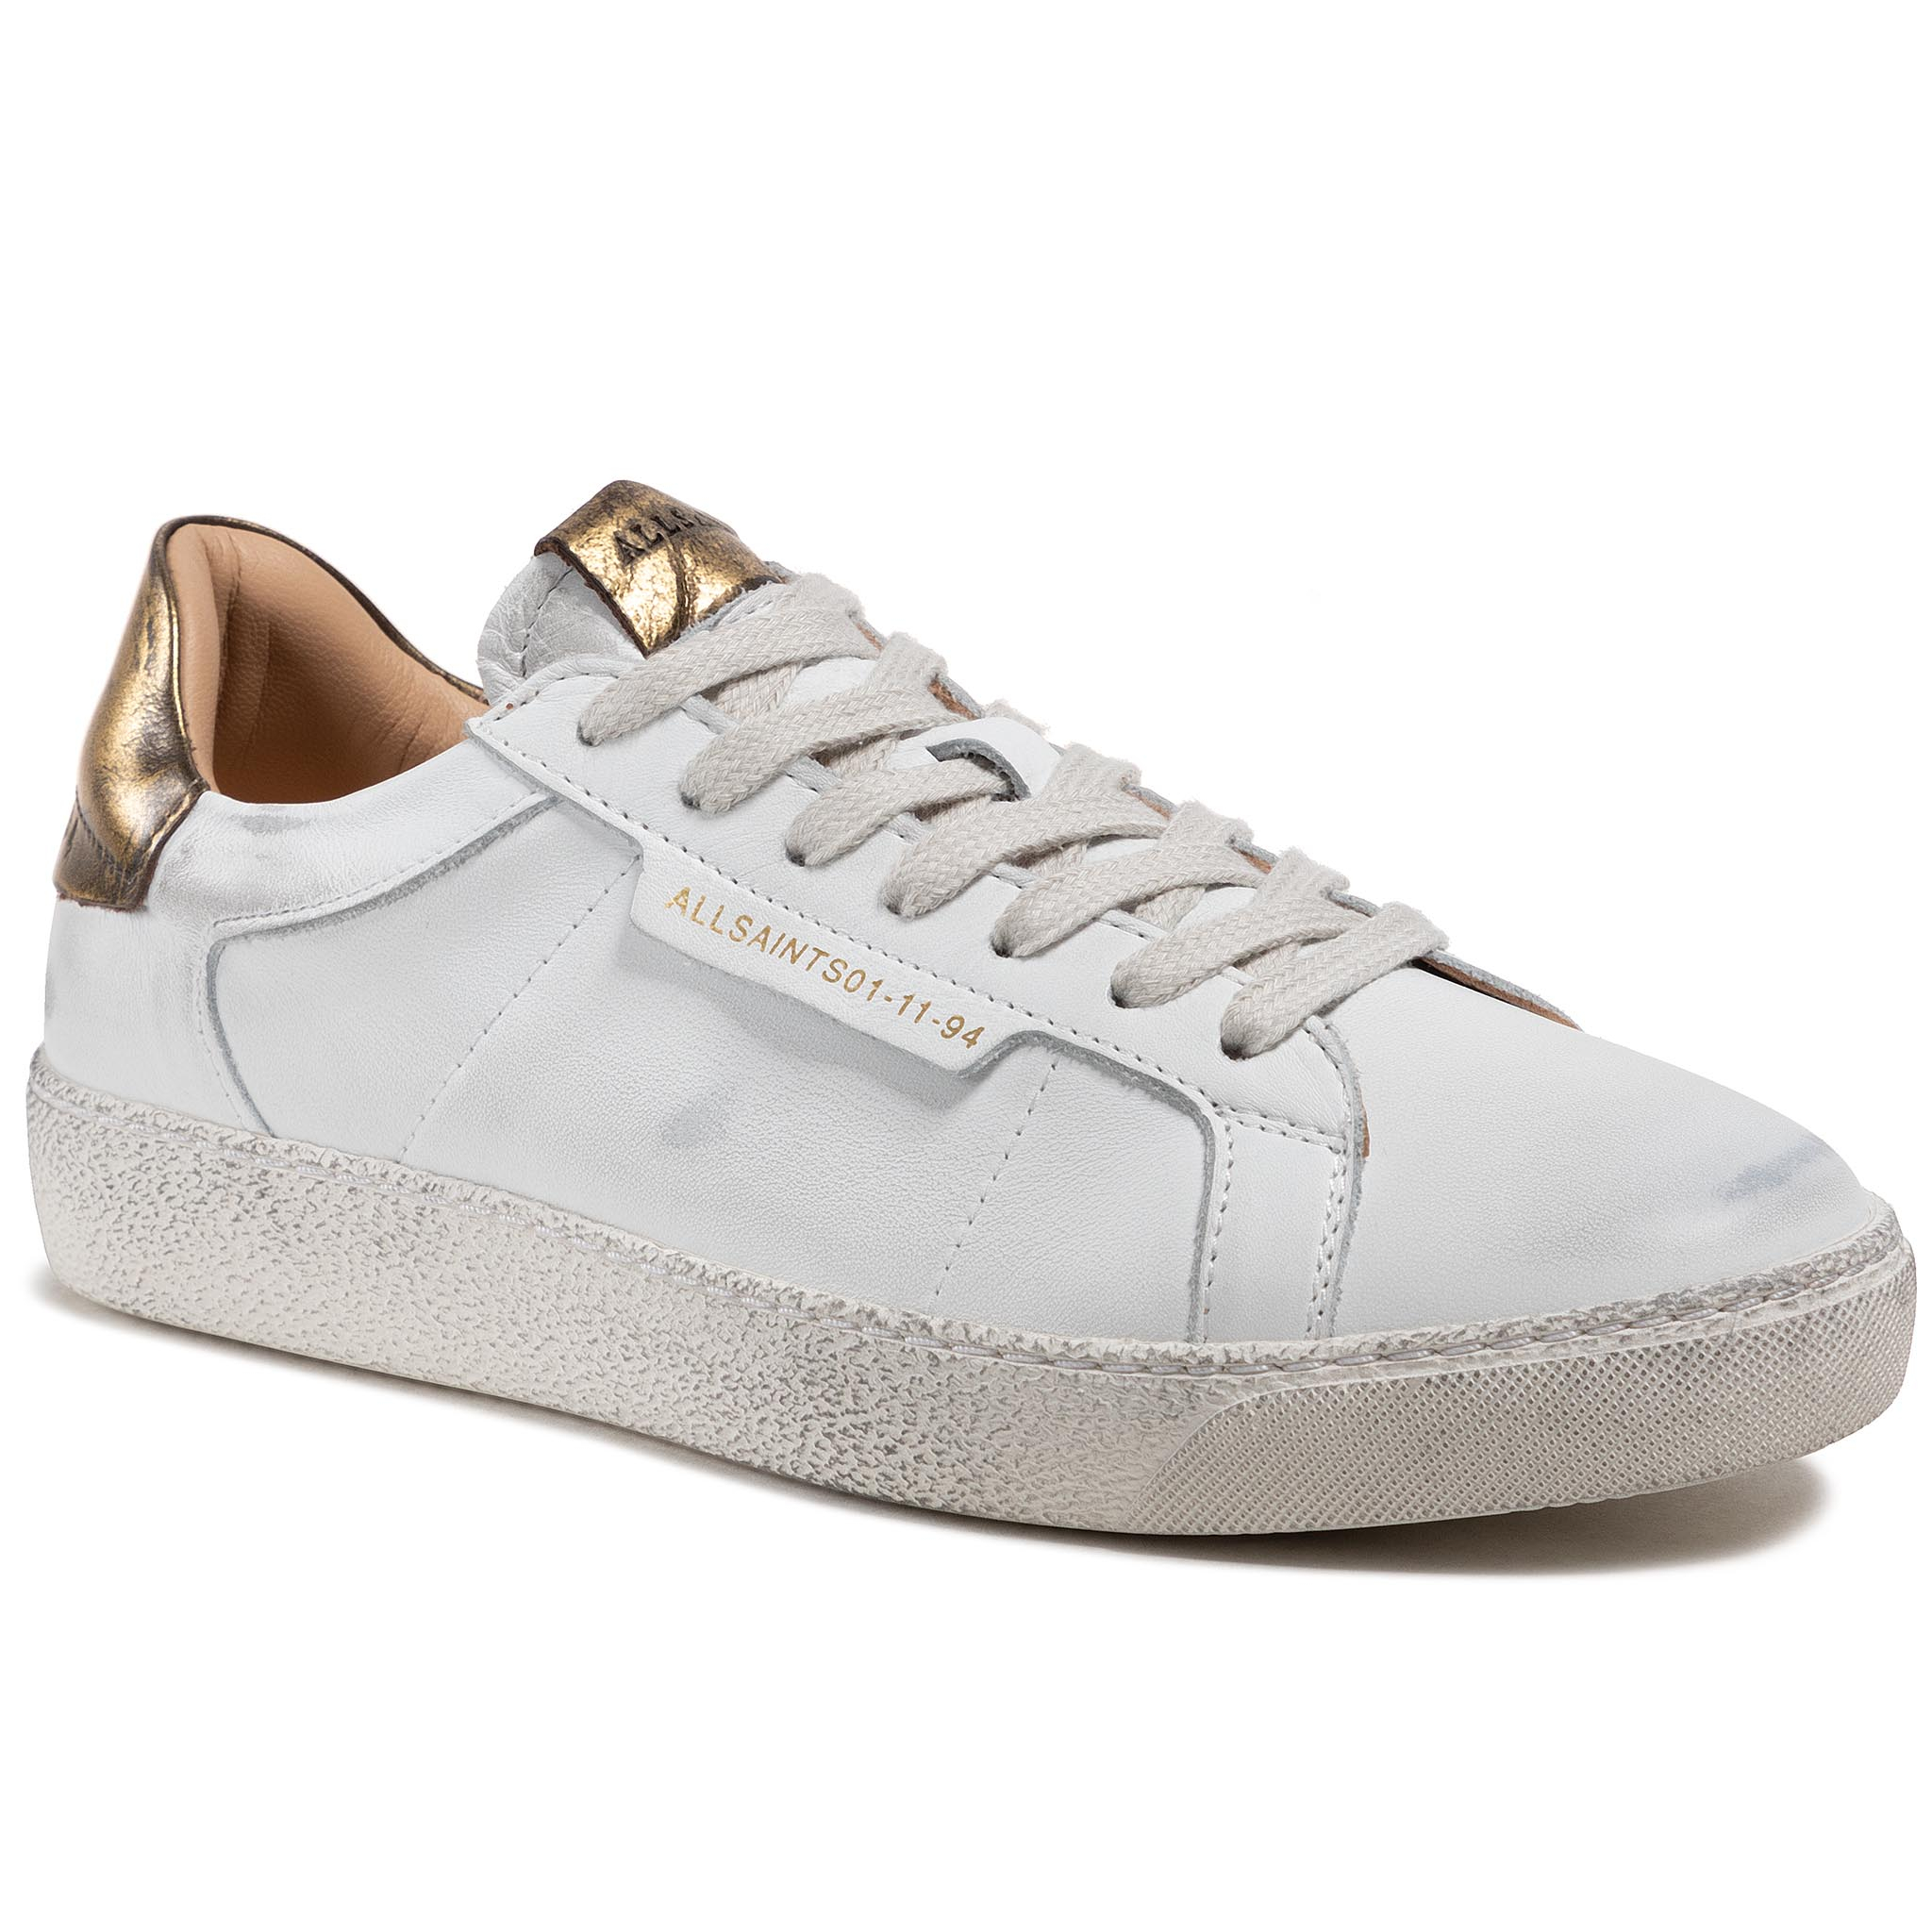 Image of Sneakers ALLSAINTS - Sheer B4ZW0352 White/Gold